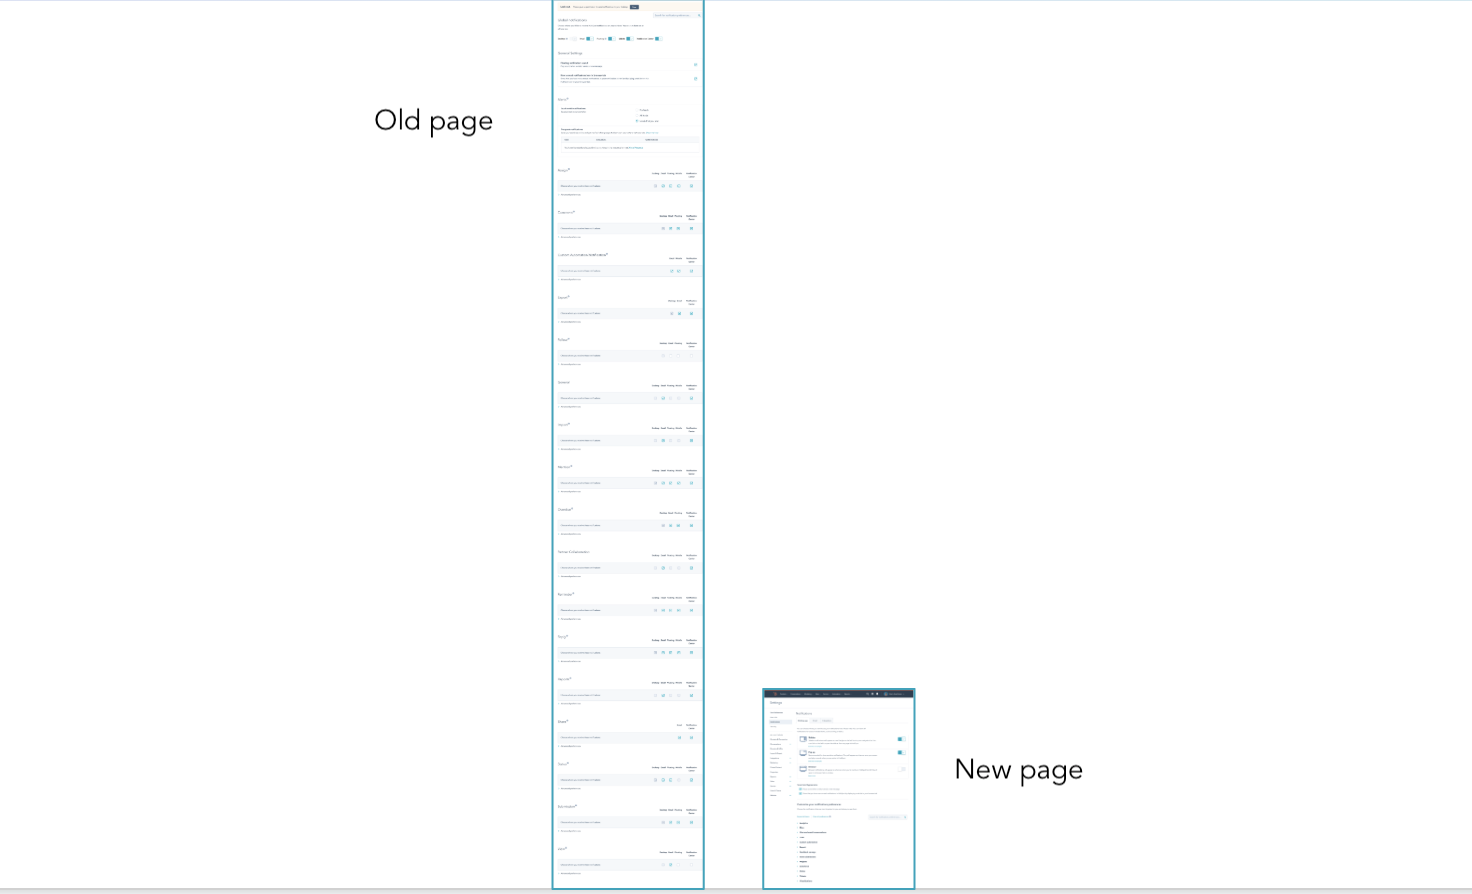 Image of old page and new page length when all accordions were closed.